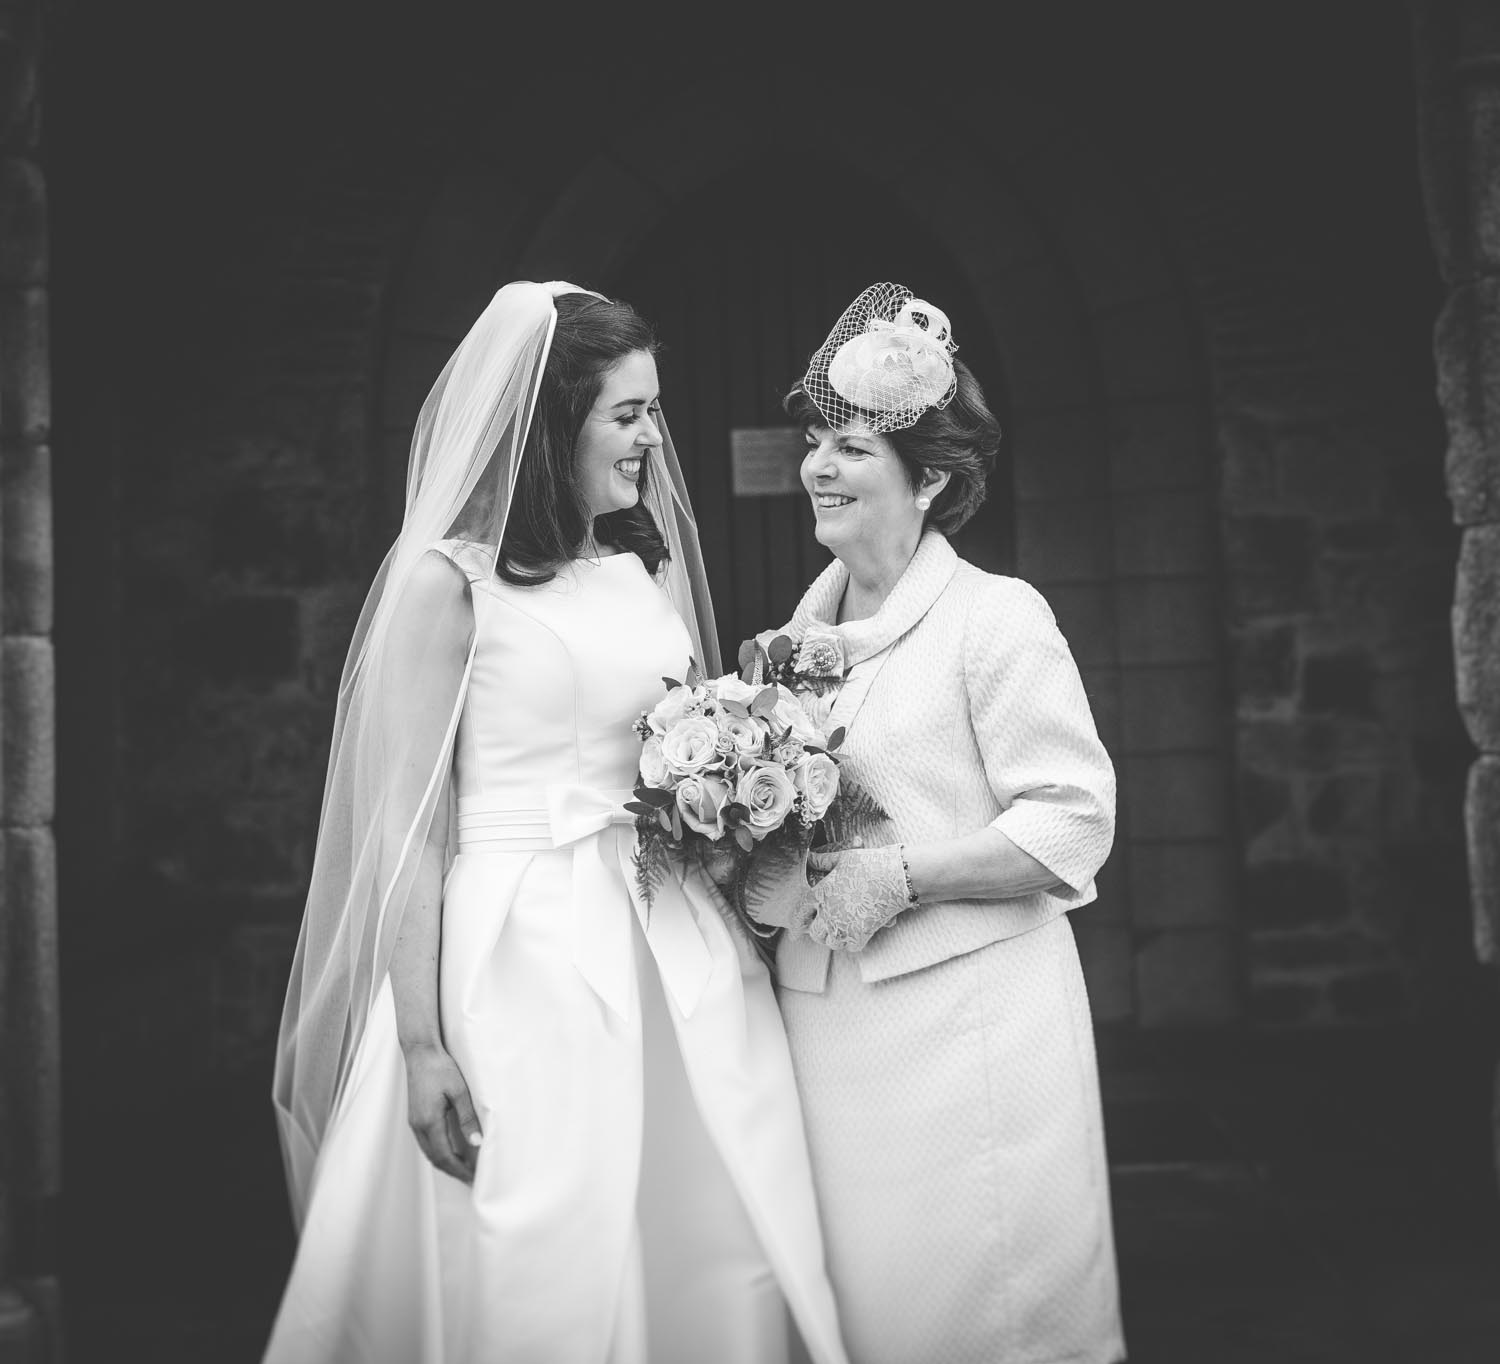 Step House wedding photographer Carlow Borris074.jpg